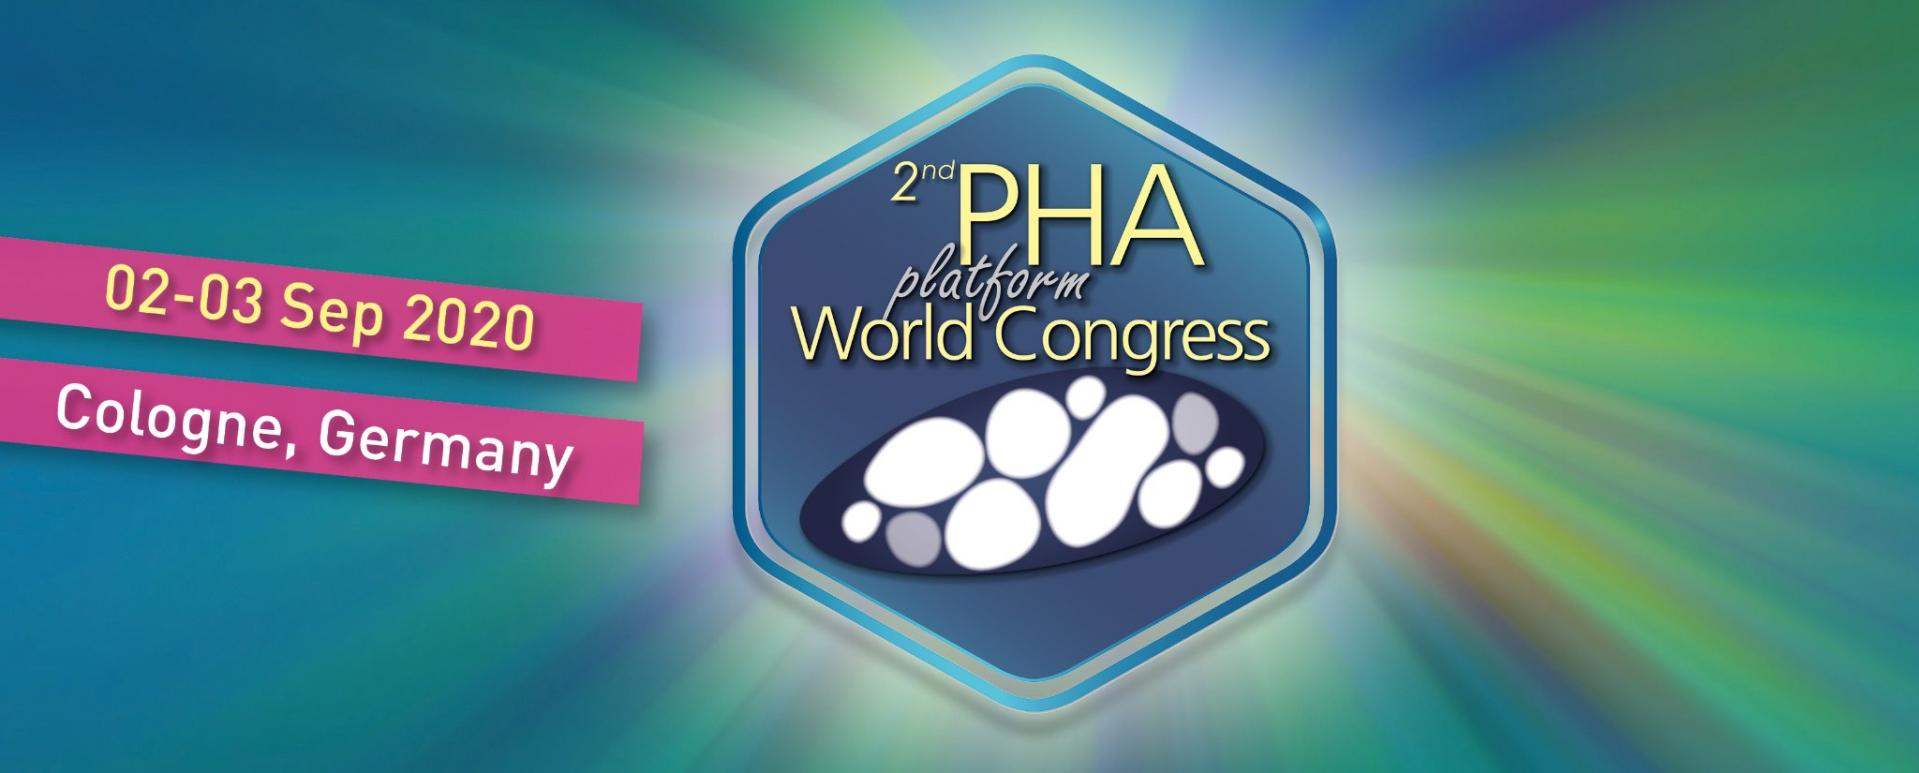 2nd PHA platform World Congress